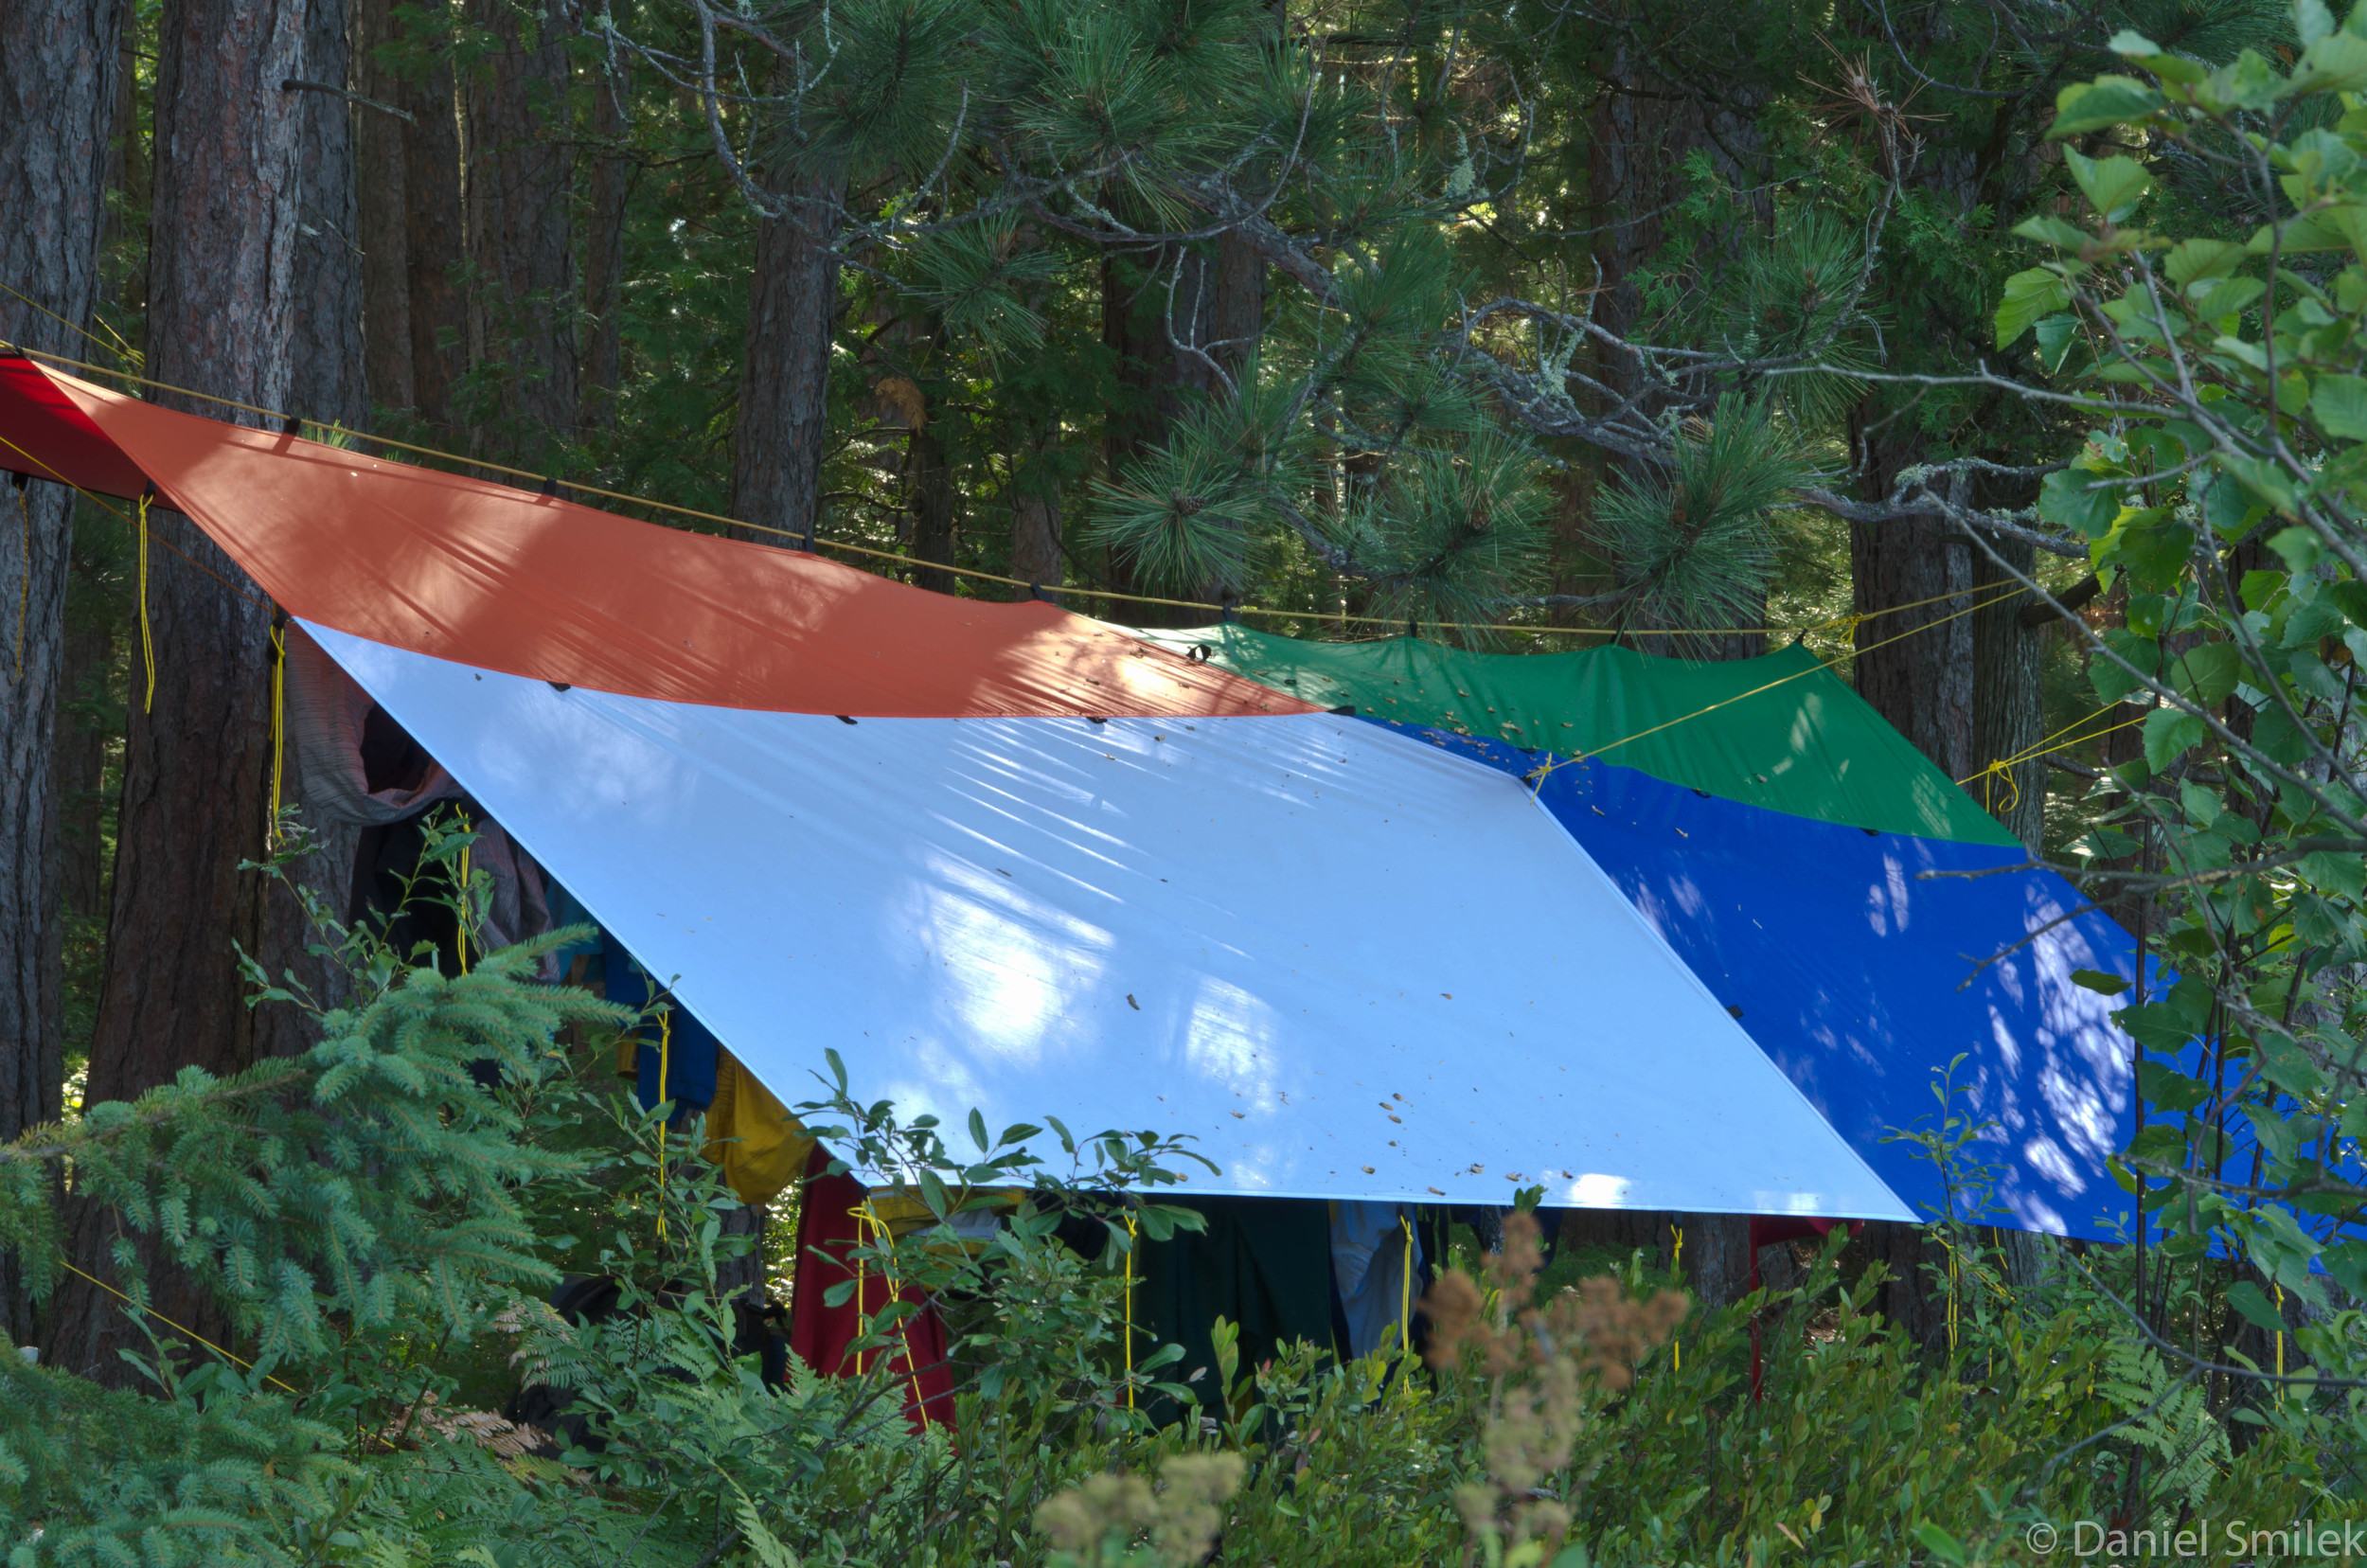 One of our tarps from Cook Custom Sewing. We store our gear under this one.